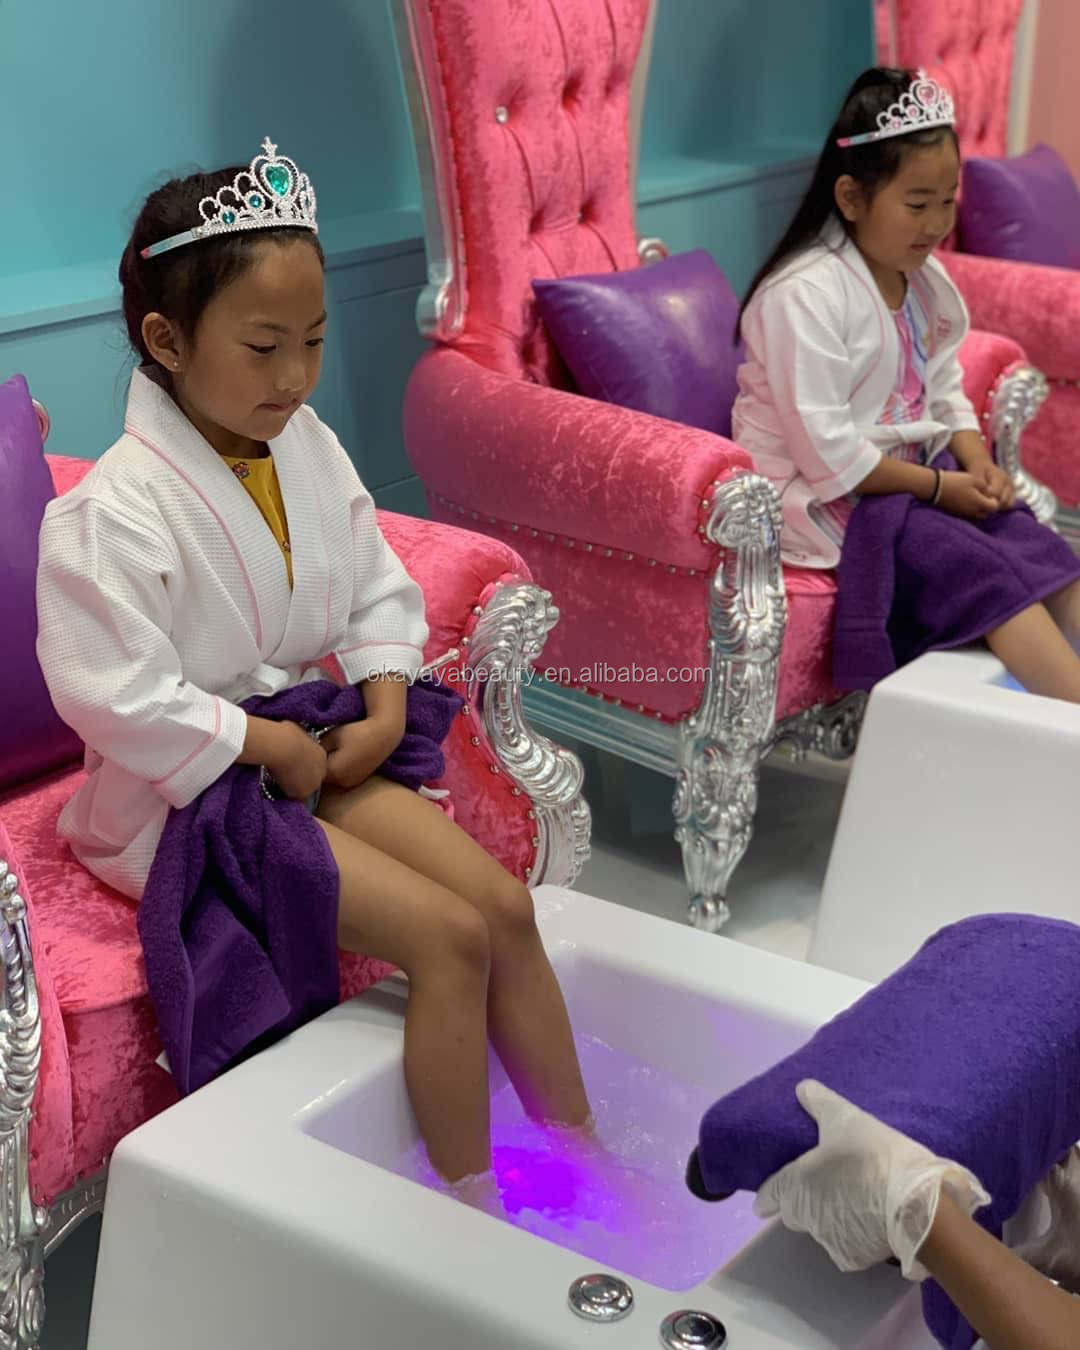 pink velvet spa furniture set nail pedicure station kid pedicure spa chair